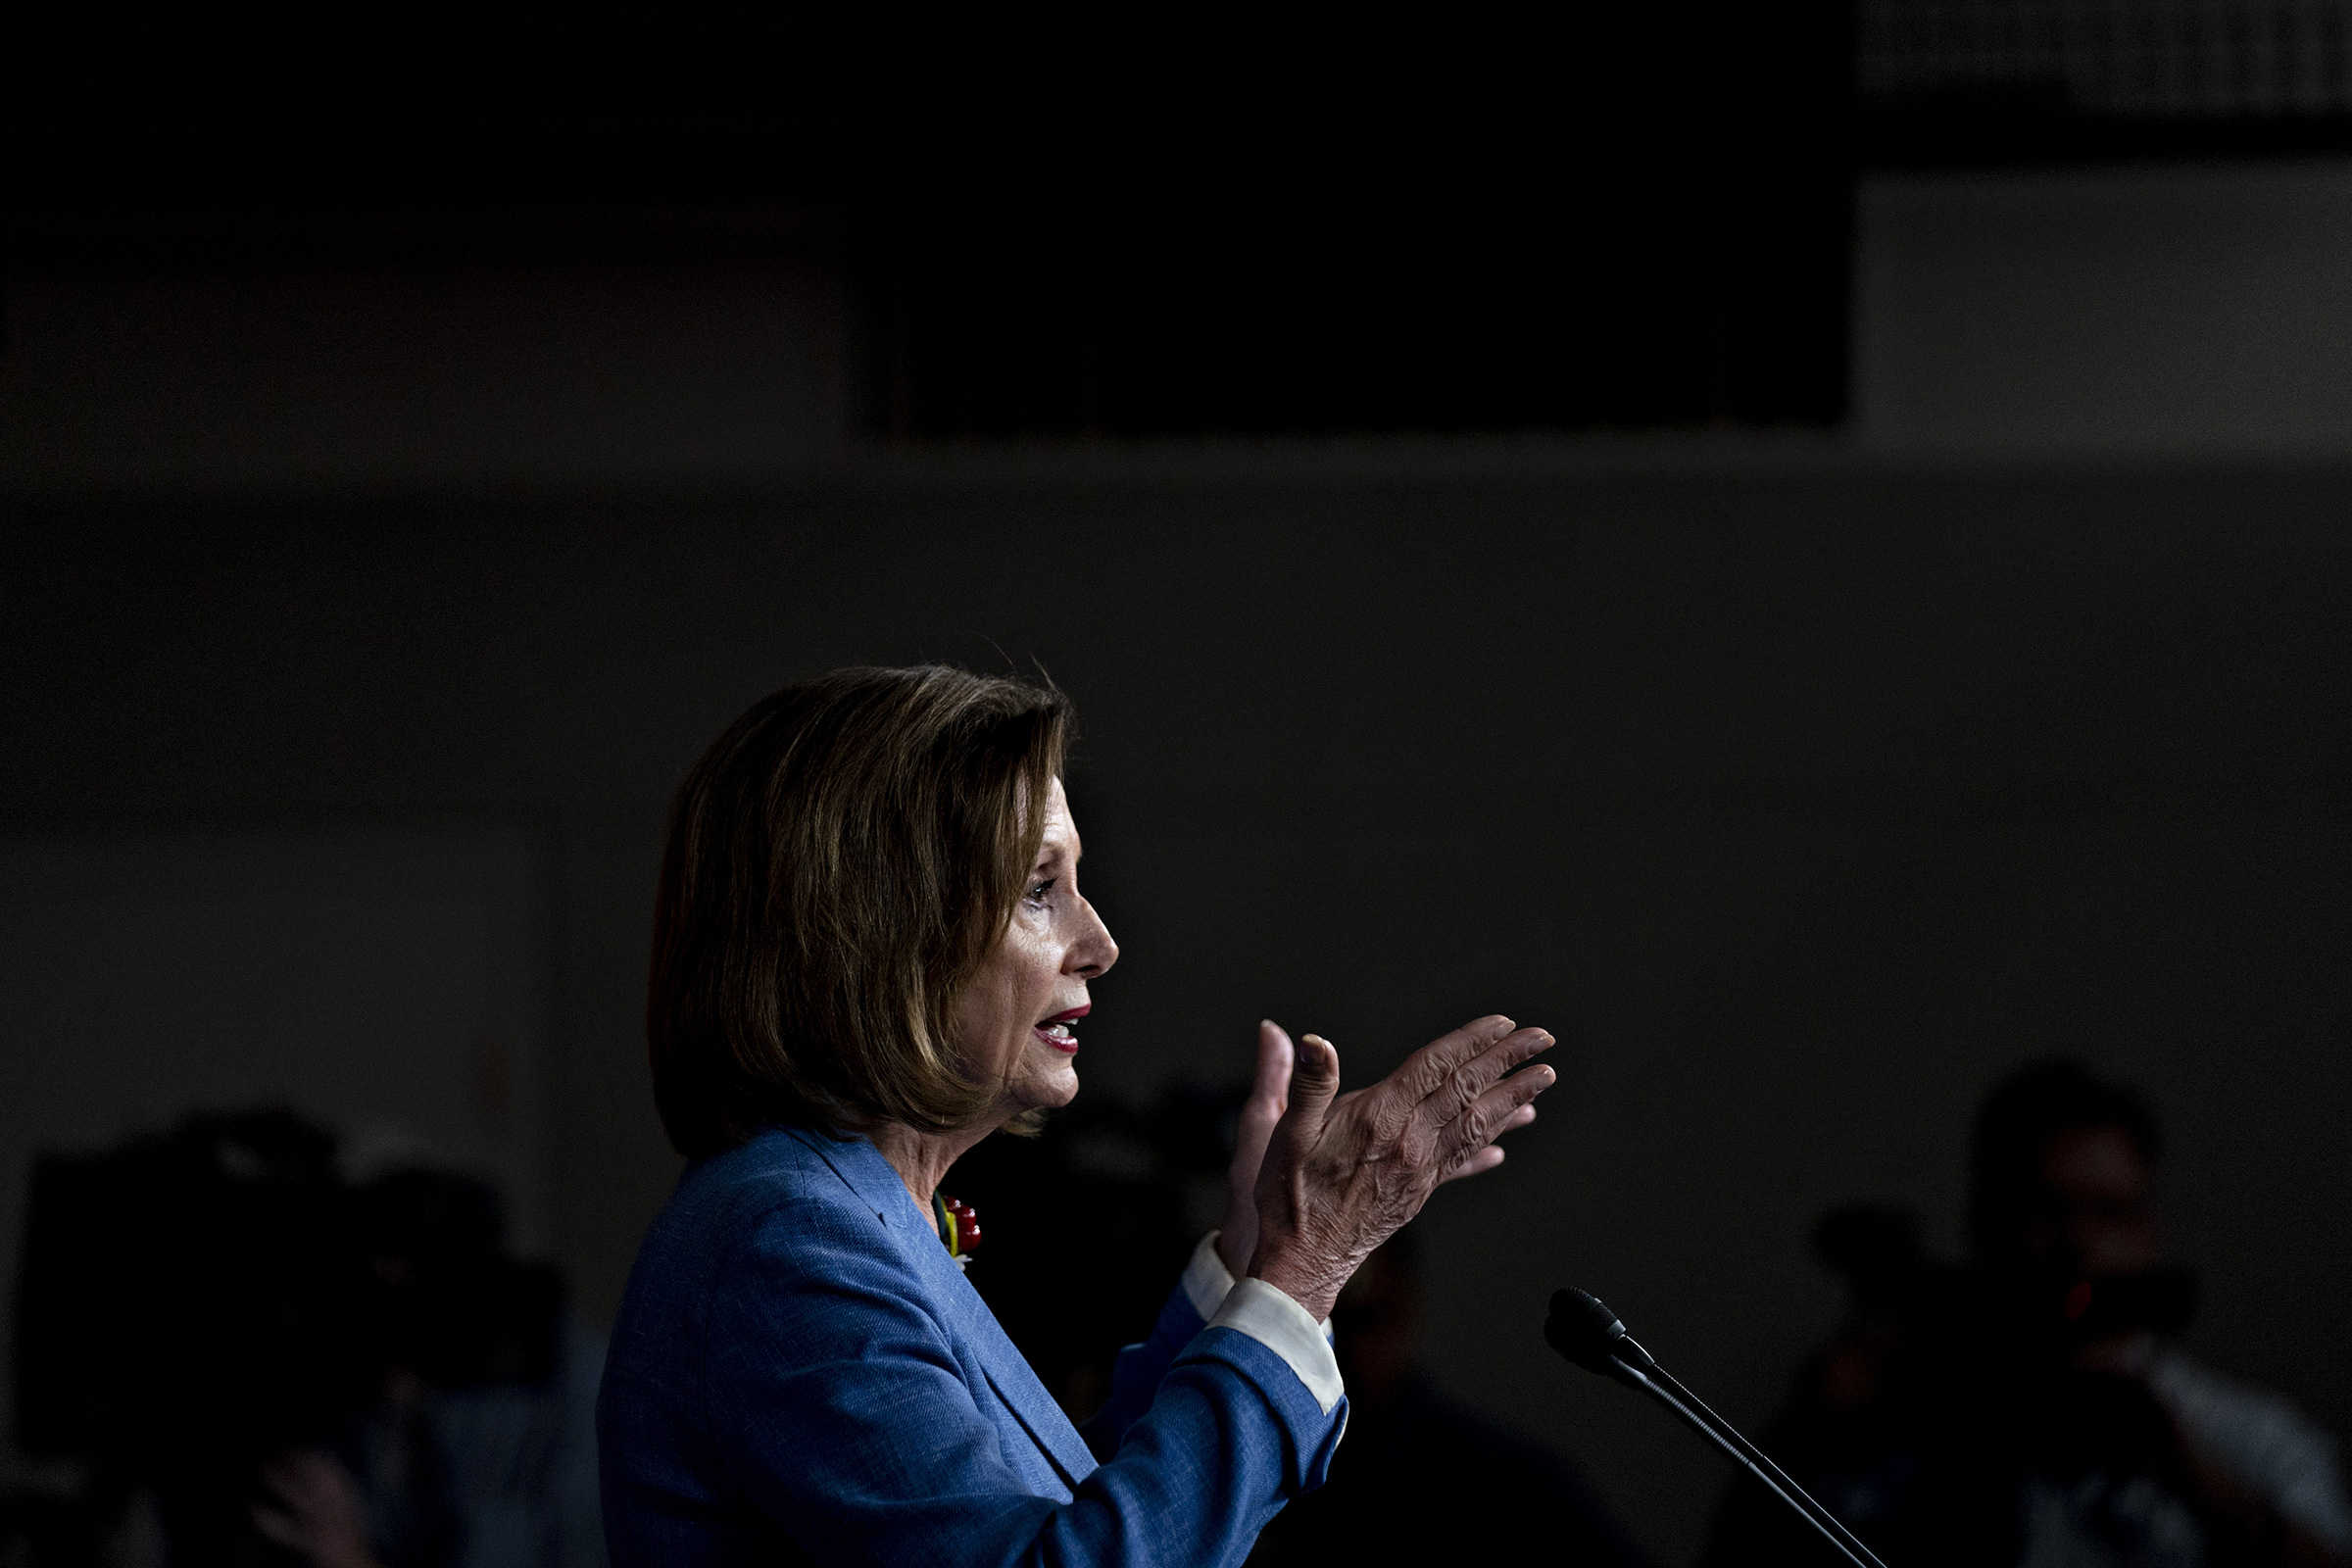 U.S. House Speaker Nancy Pelosi speaks during a news conference on Capitol Hill in Washington, D.C., July 26, 2019.